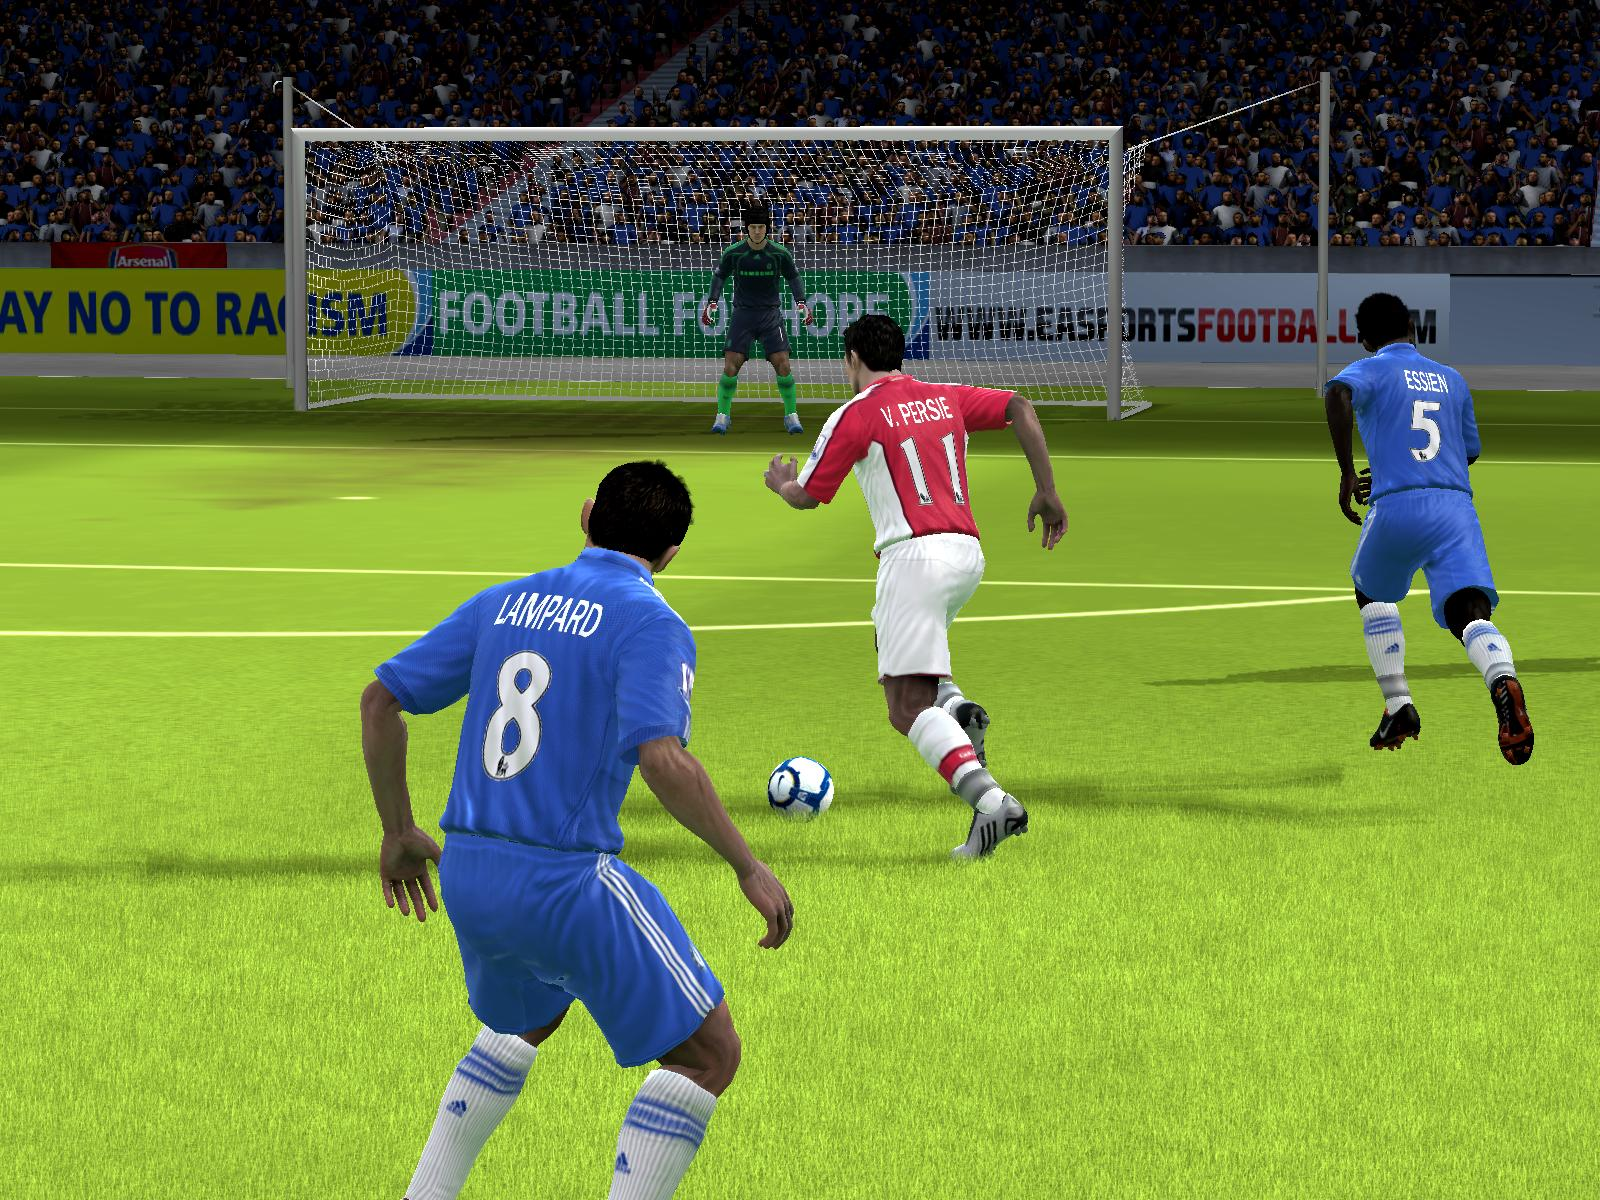 Soccer Football Sport Game: Indian Sports